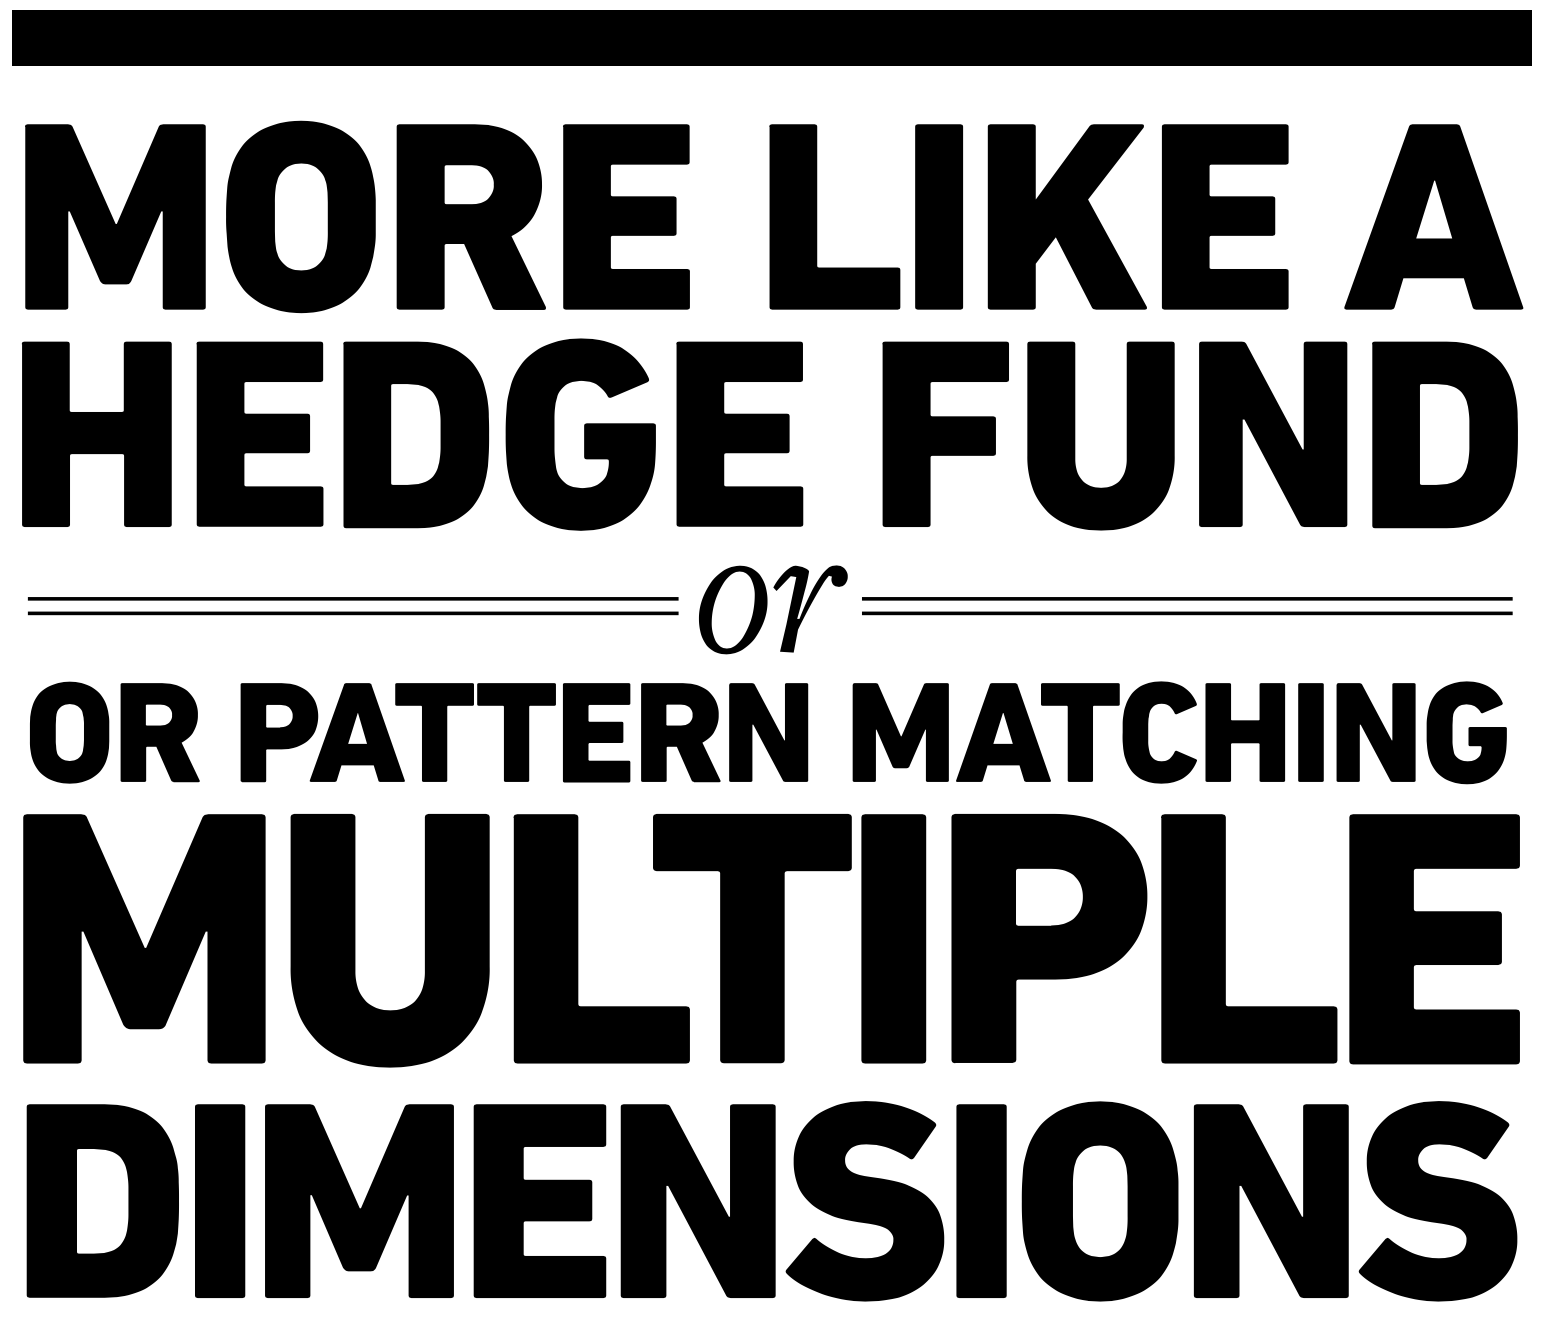 More like a hedge fund or pattern matching multiple dimensions